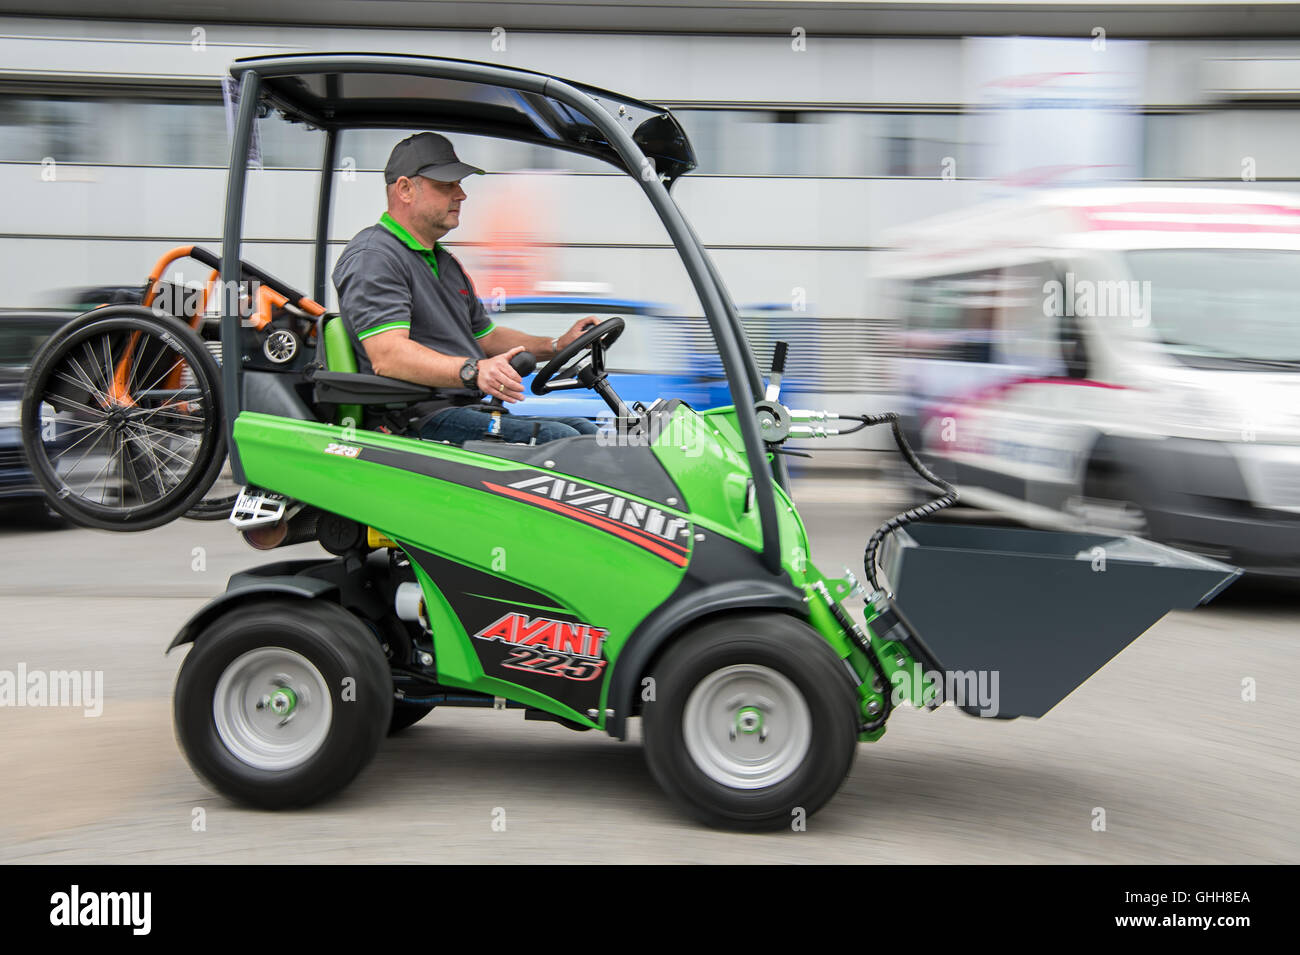 Duesseldorf, Germany. 28th Sep, 2016. Bert Pein driving a 'Handicap-Version' of the multi-fuctional forklift 'AVANT 225' by the Finish company 'Avant Tecno OY' during the opening of the international care fair 'Rheacare' in Duesseldorf, Germany, 28 September 2016. The fair runs until 1 October 2016. PHOTO: WOLFRAM KASTL/dpa/Alamy Live News Stock Photo